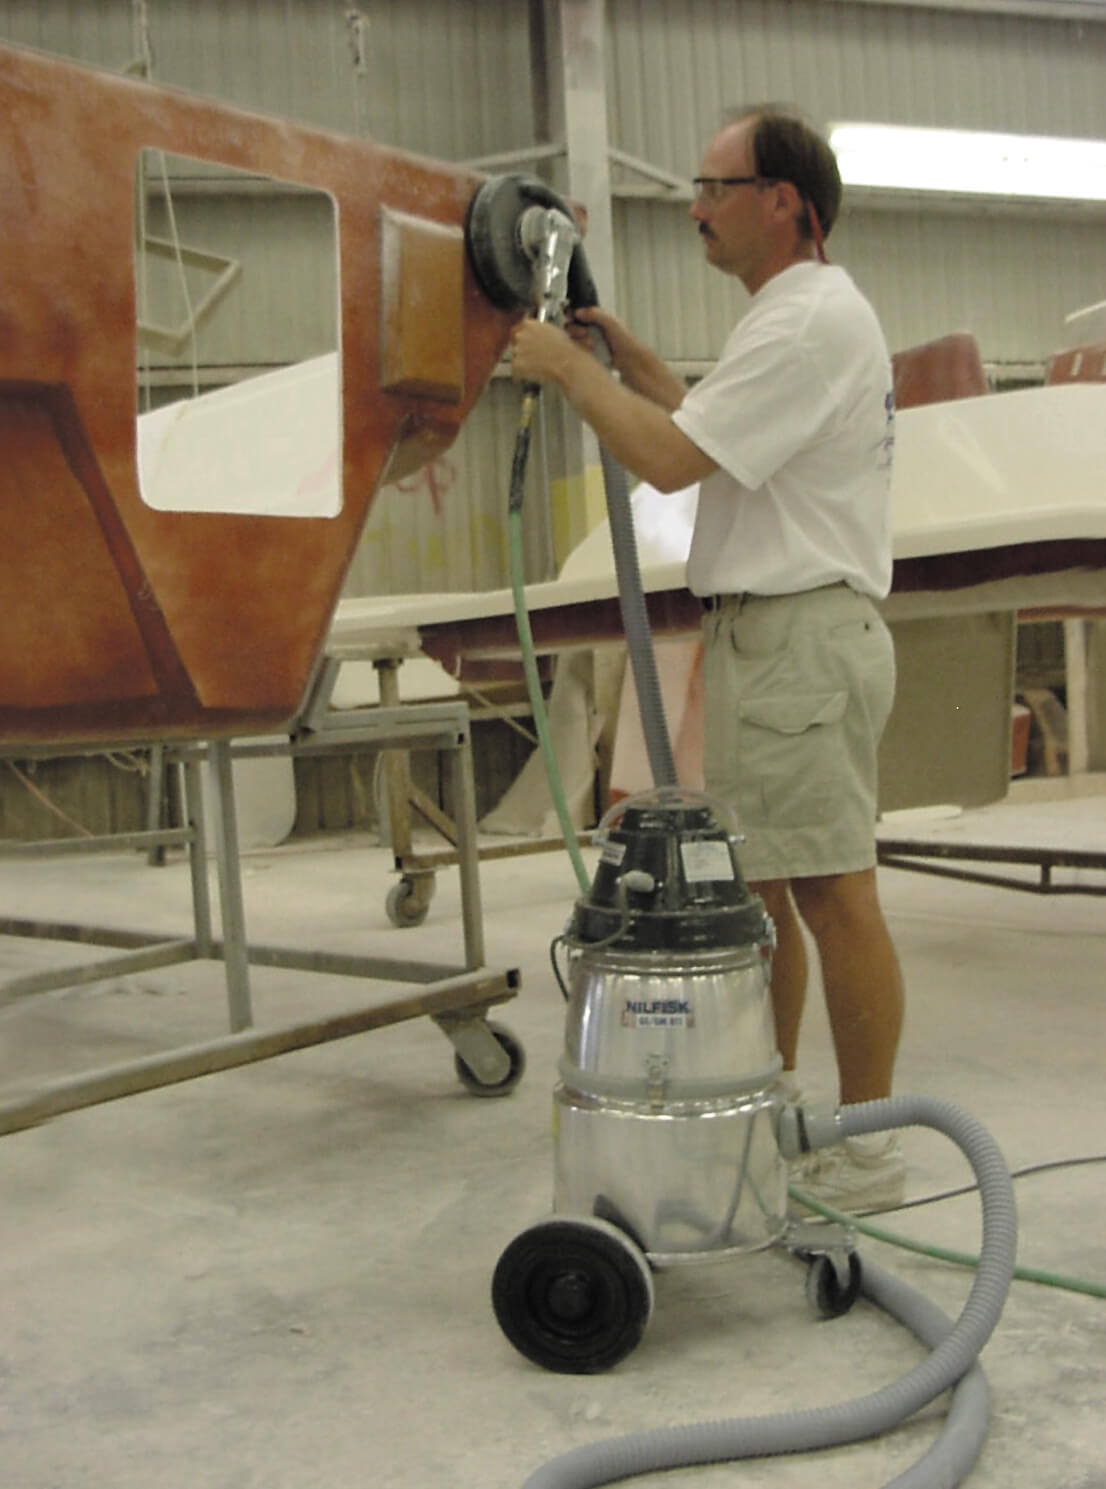 Boat Manufacturers Join the Combustible Dust Current